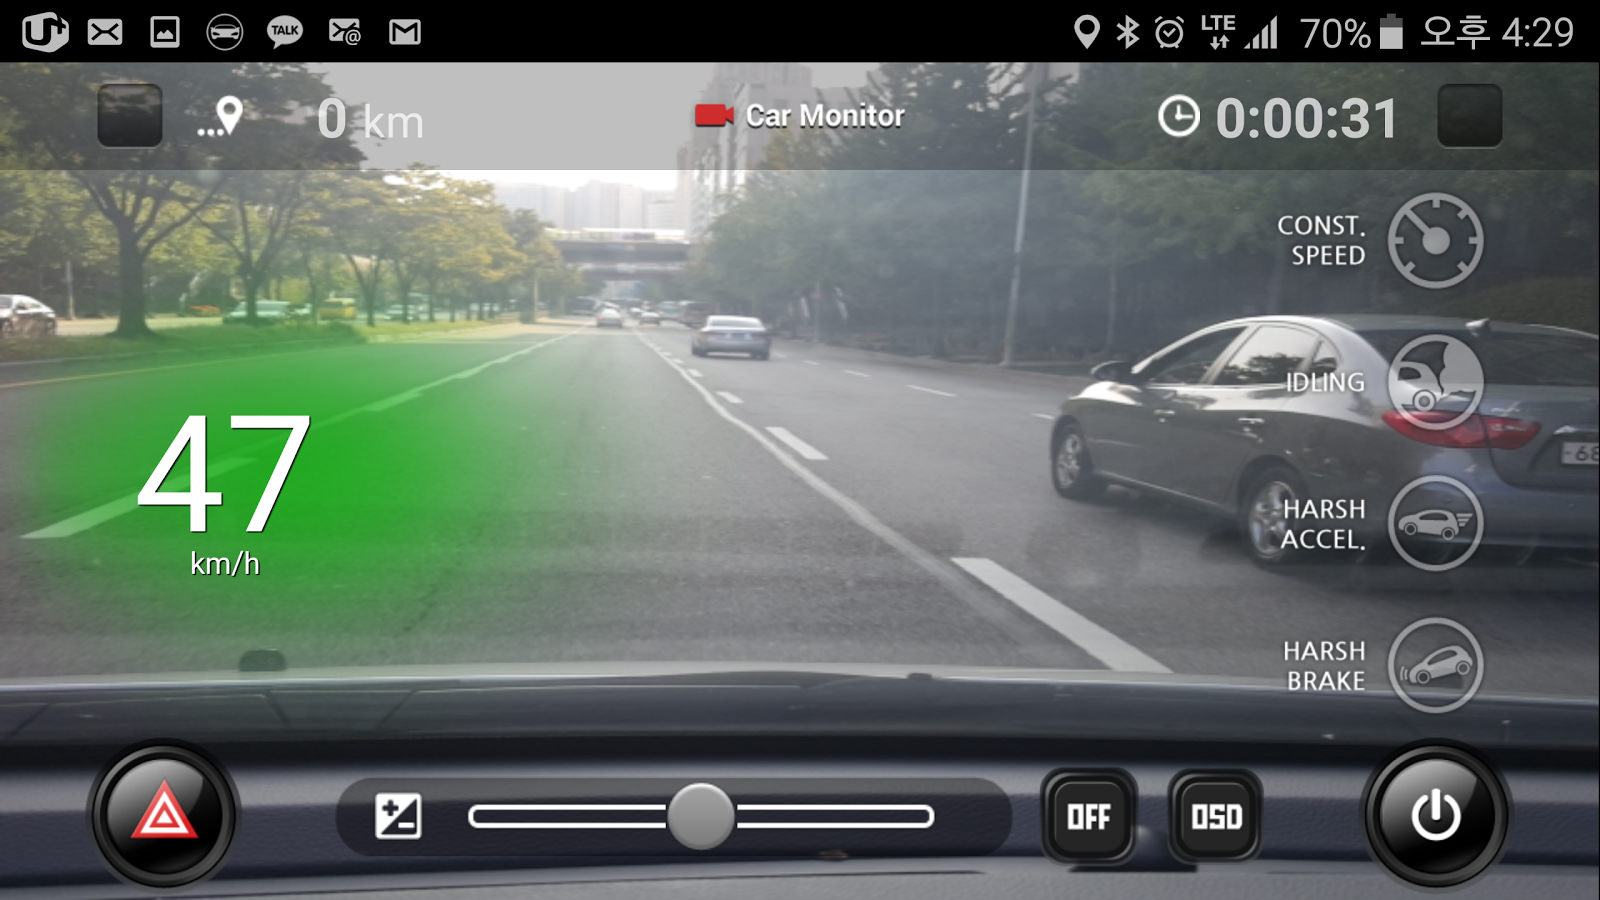 7 Best Dash Cam Apps For Android Smartphone Pros Amp Cons